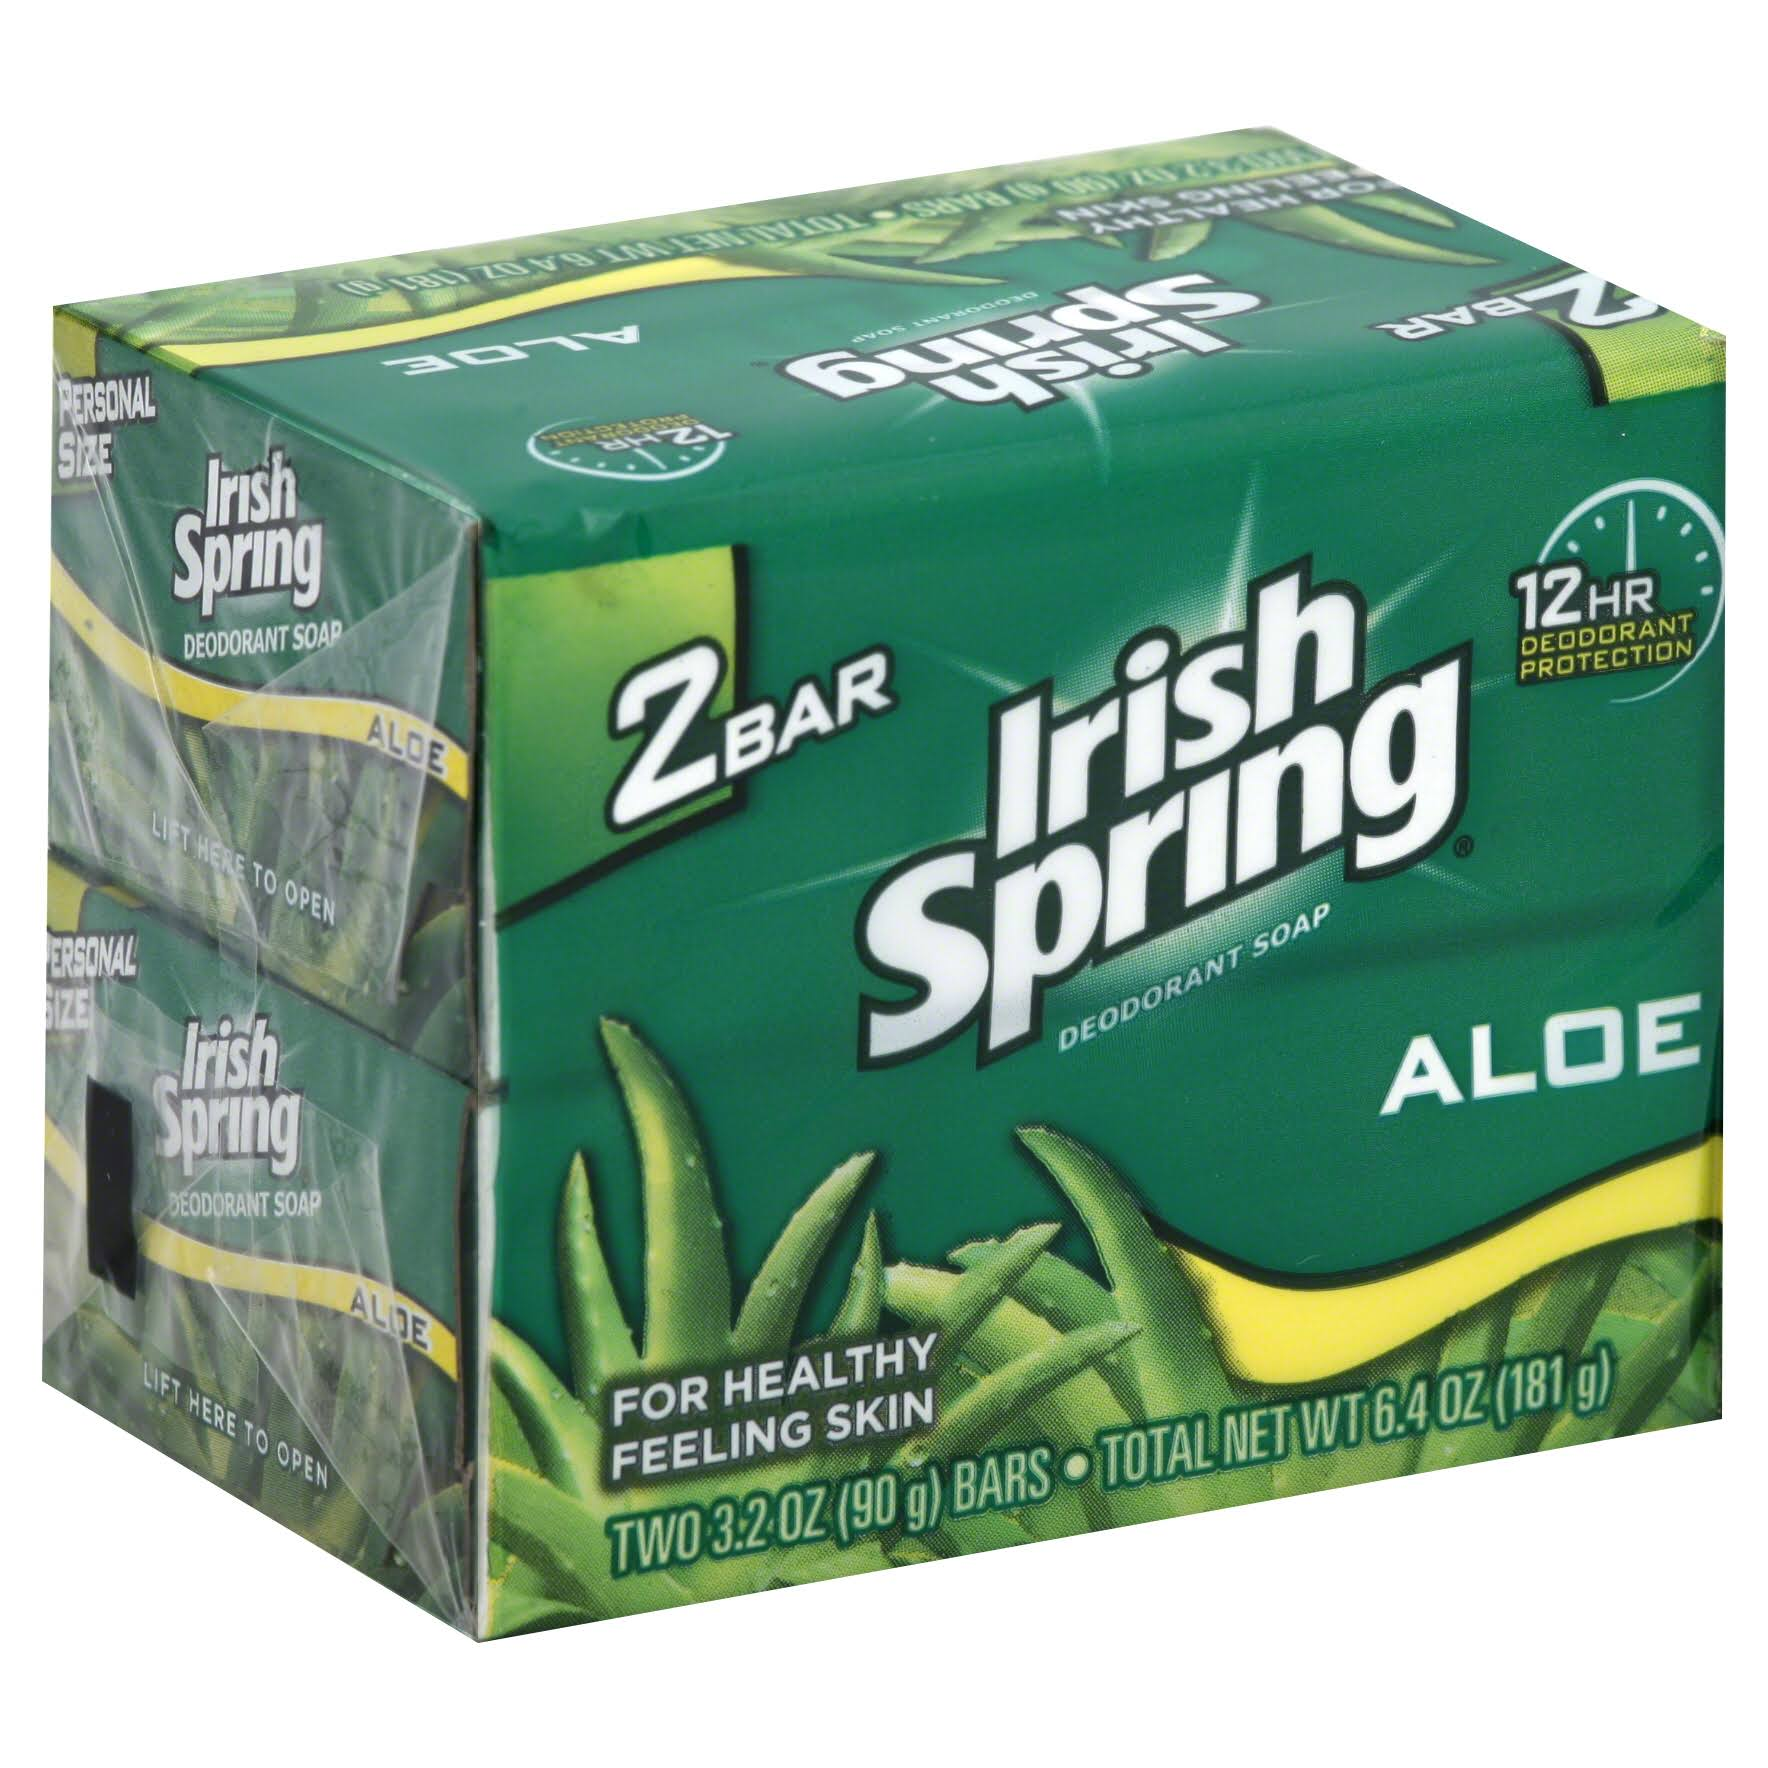 Irish Spring Bars Soap Aloe Bath - 3.2oz, 2ct